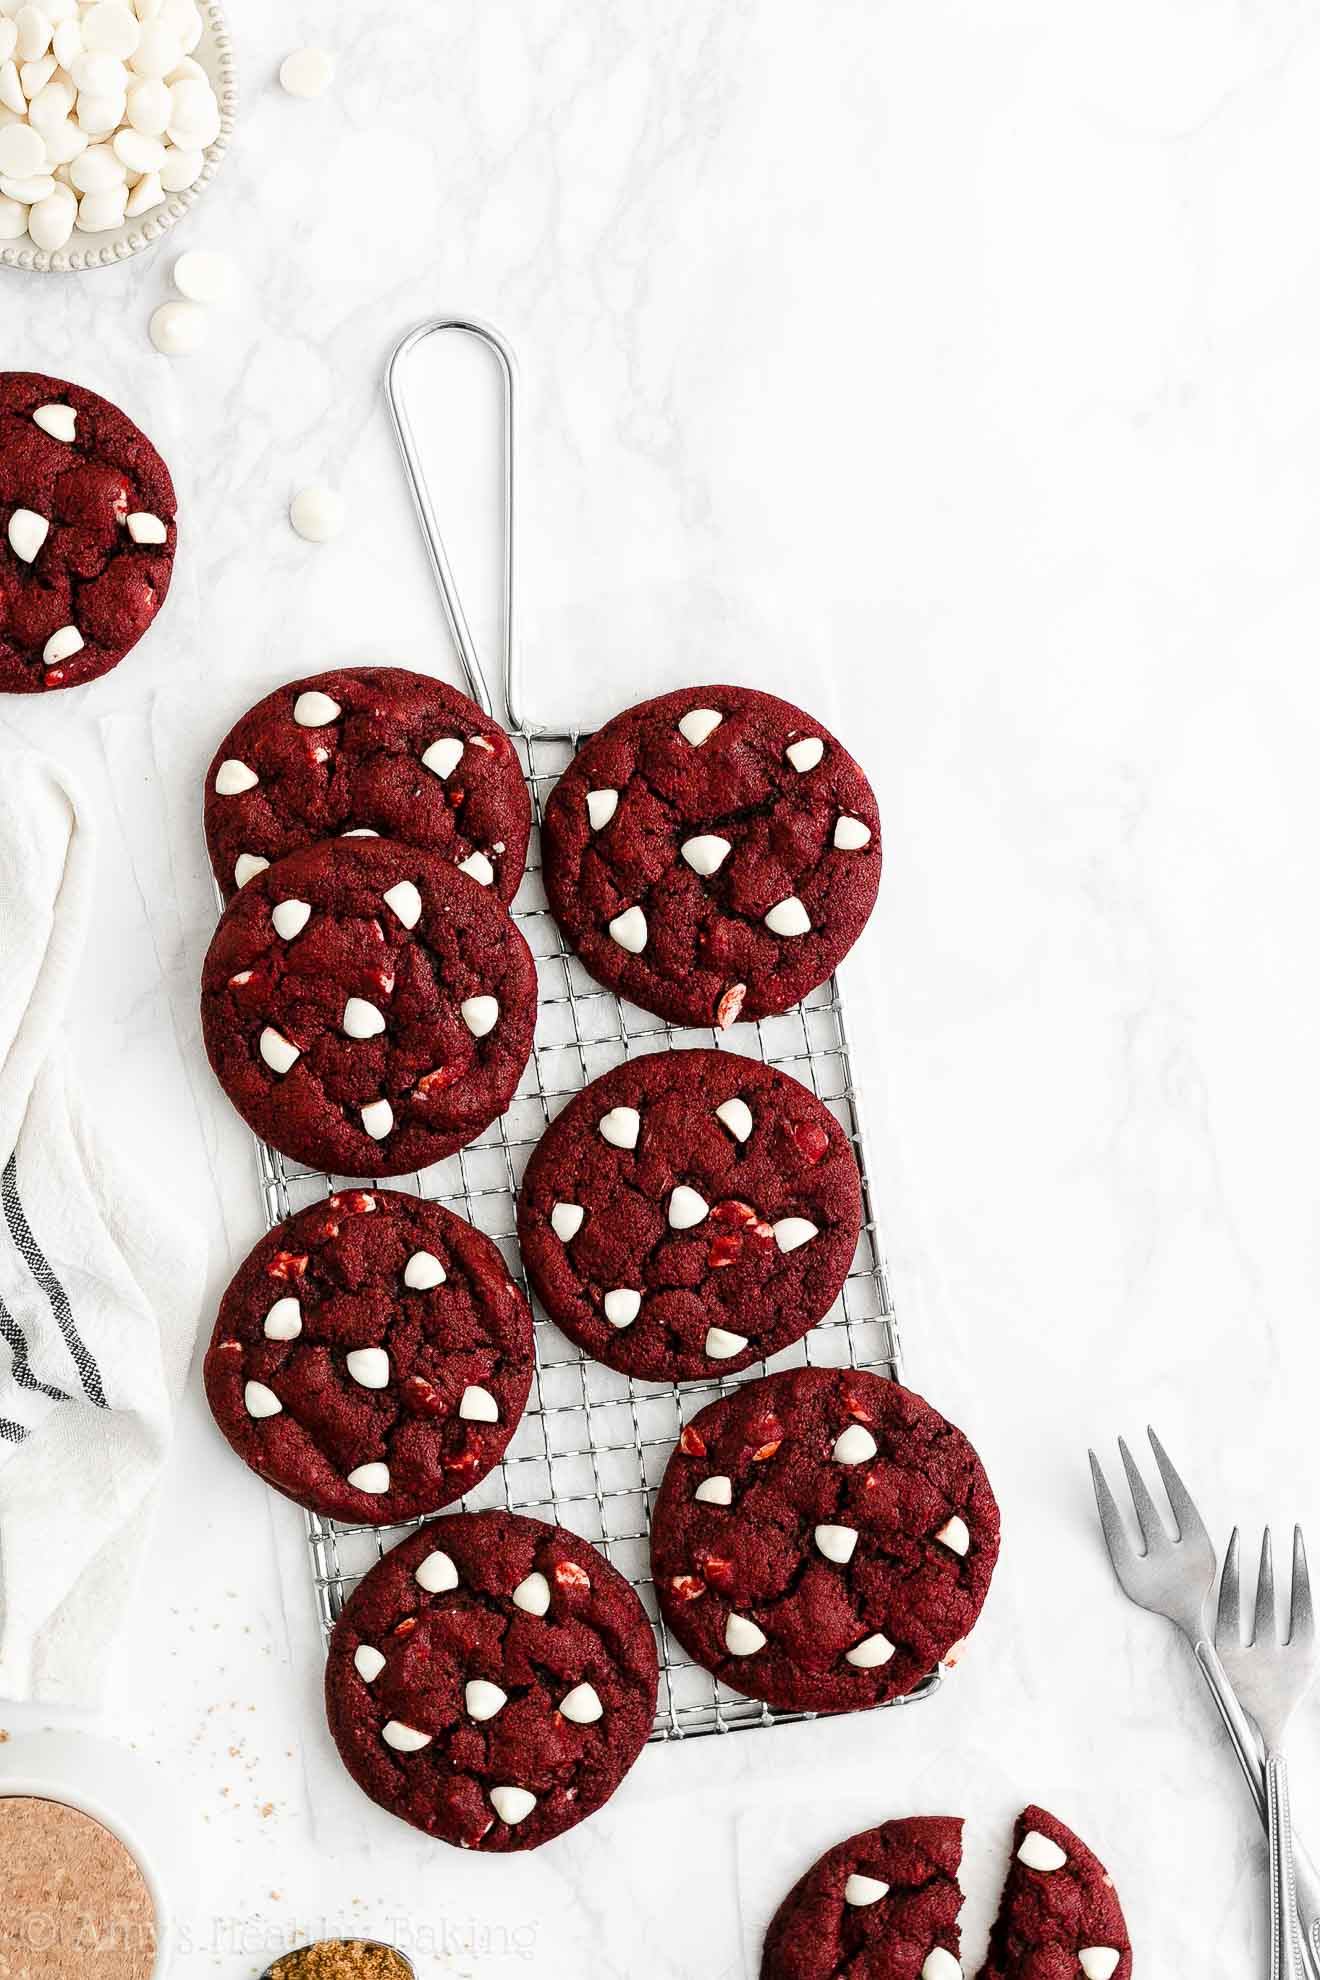 Easy Healthy Gluten Free Vegan White Chocolate Red Velvet Cookies No Eggs